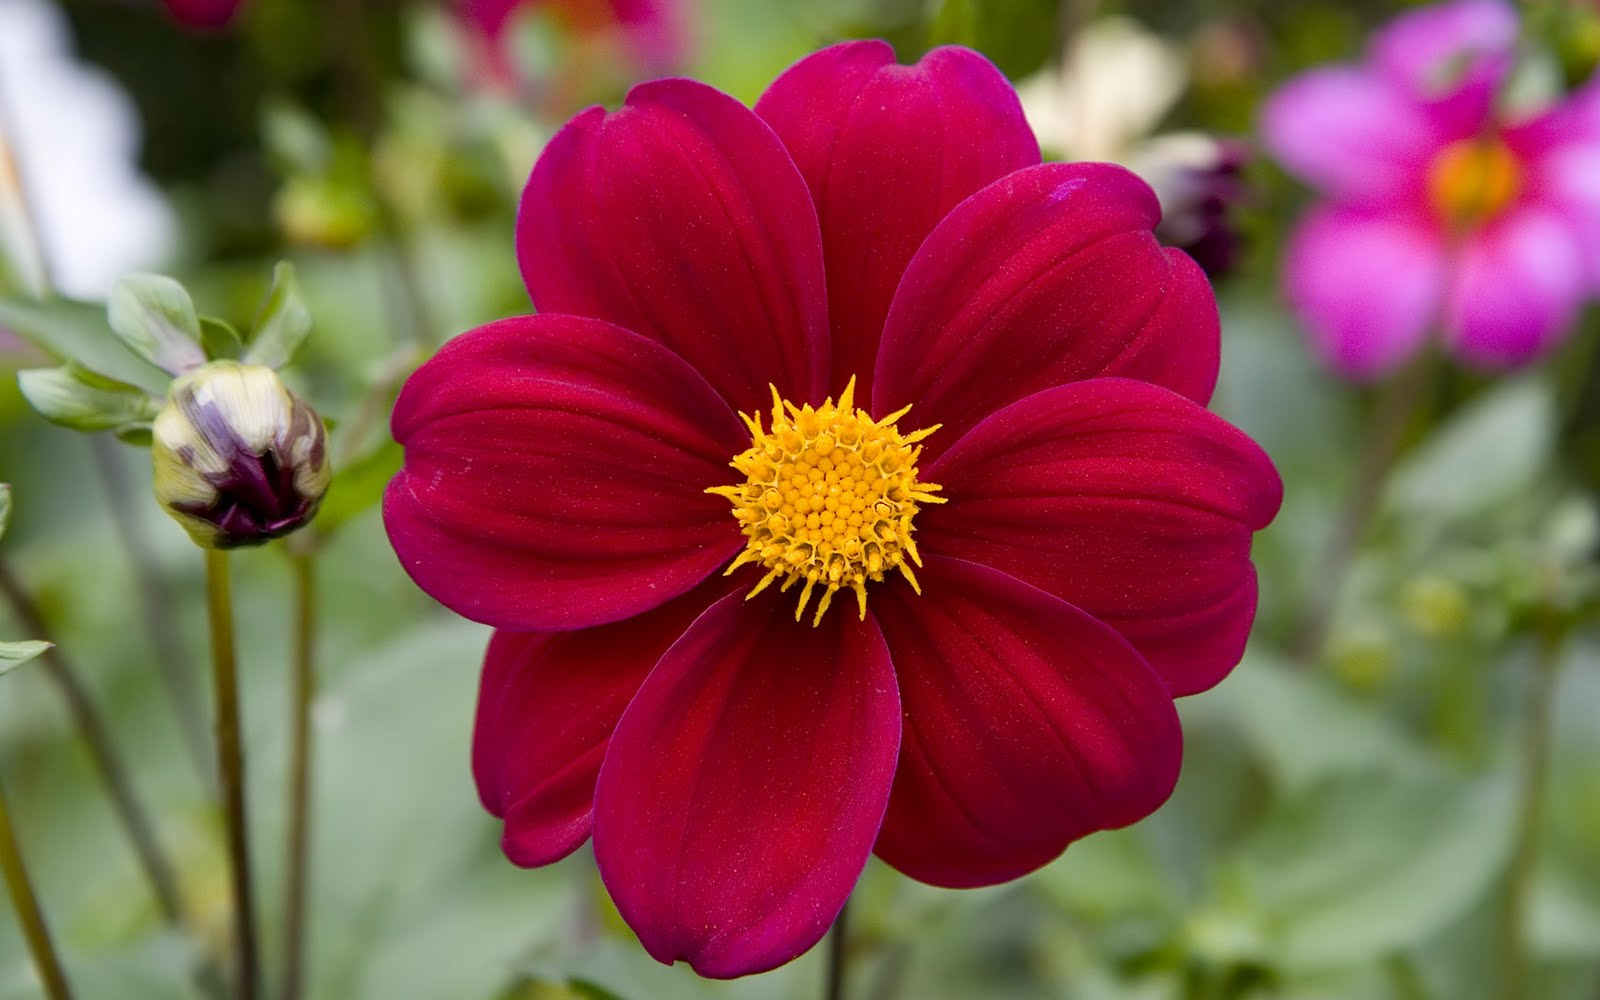 Natural Flower Picture for Wallpaper - WallpaperSafari  Images Of Nature And Flowers